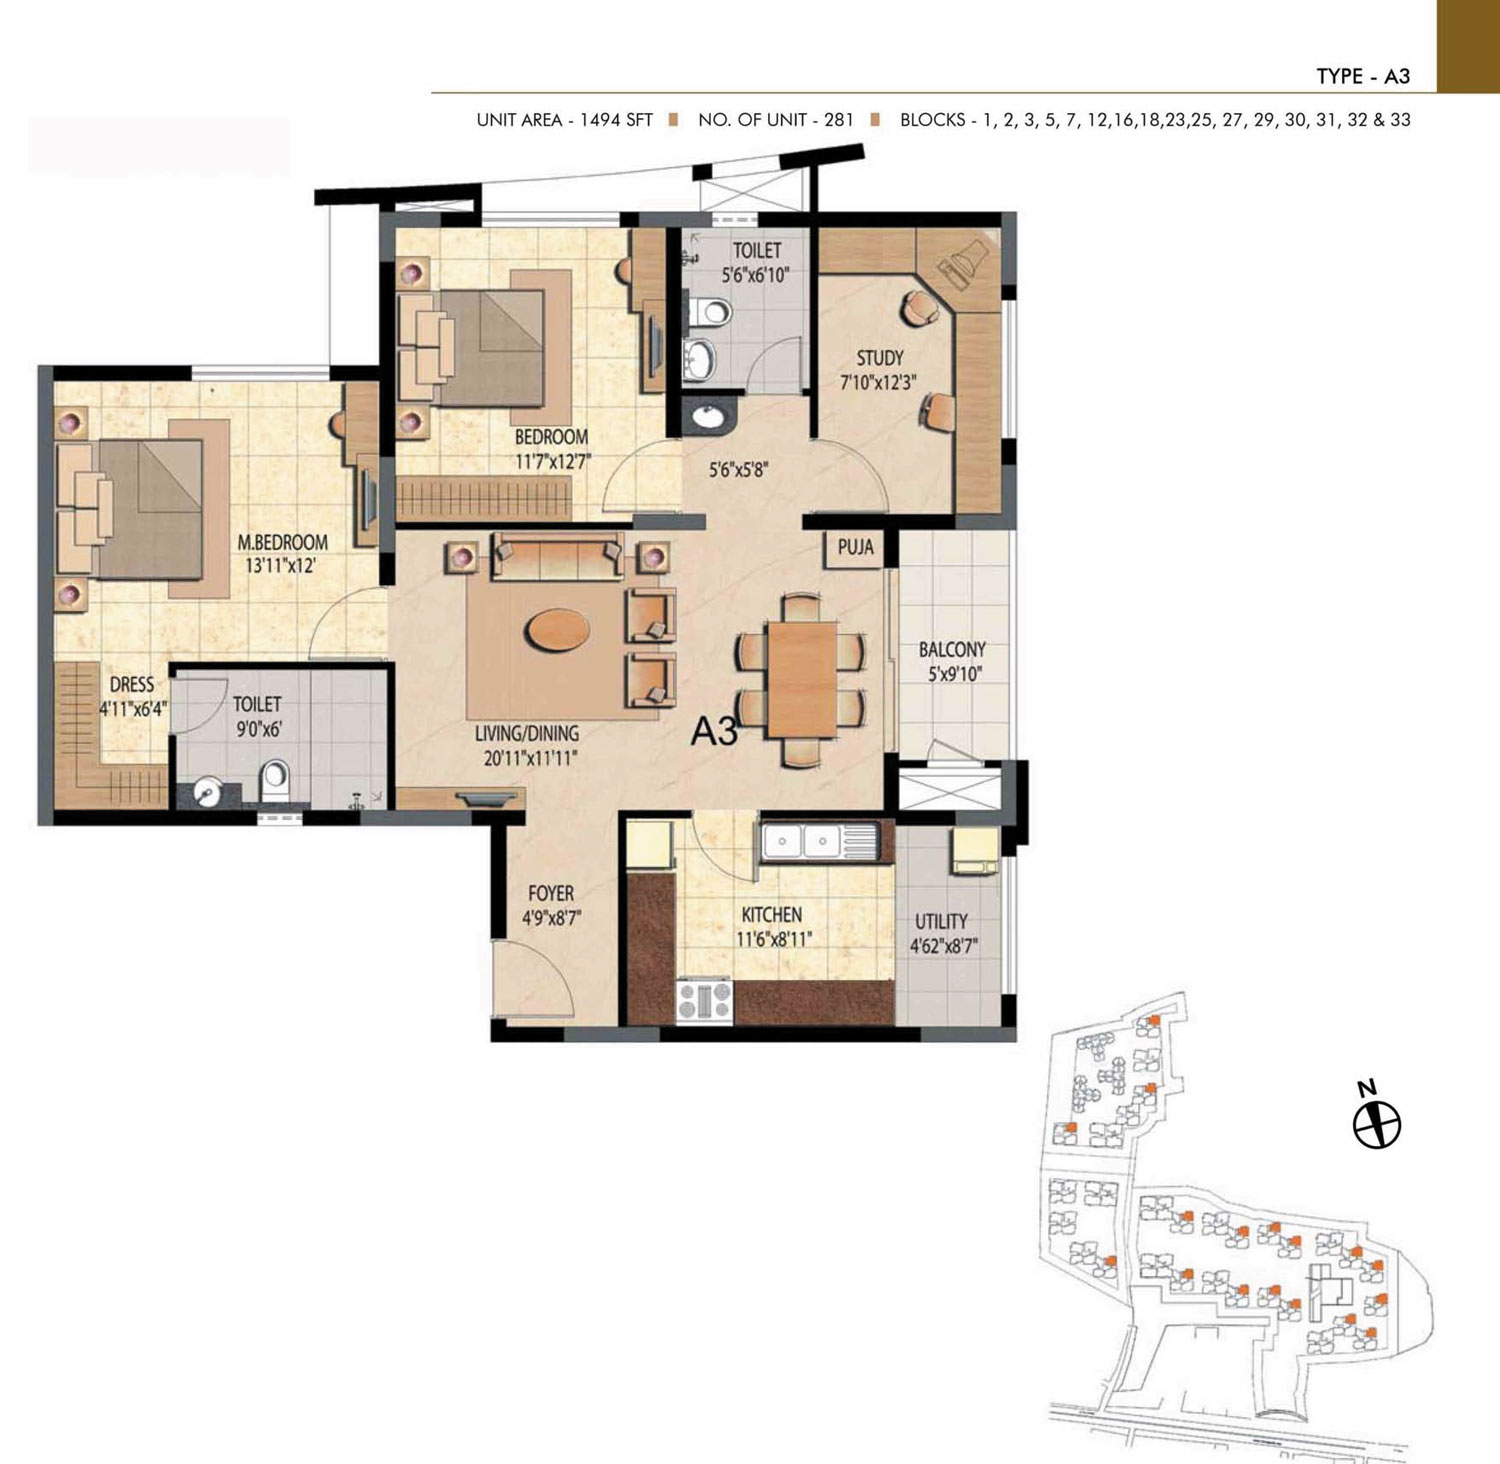 Type A3 - 2 Bed - 1494 Sq Ft